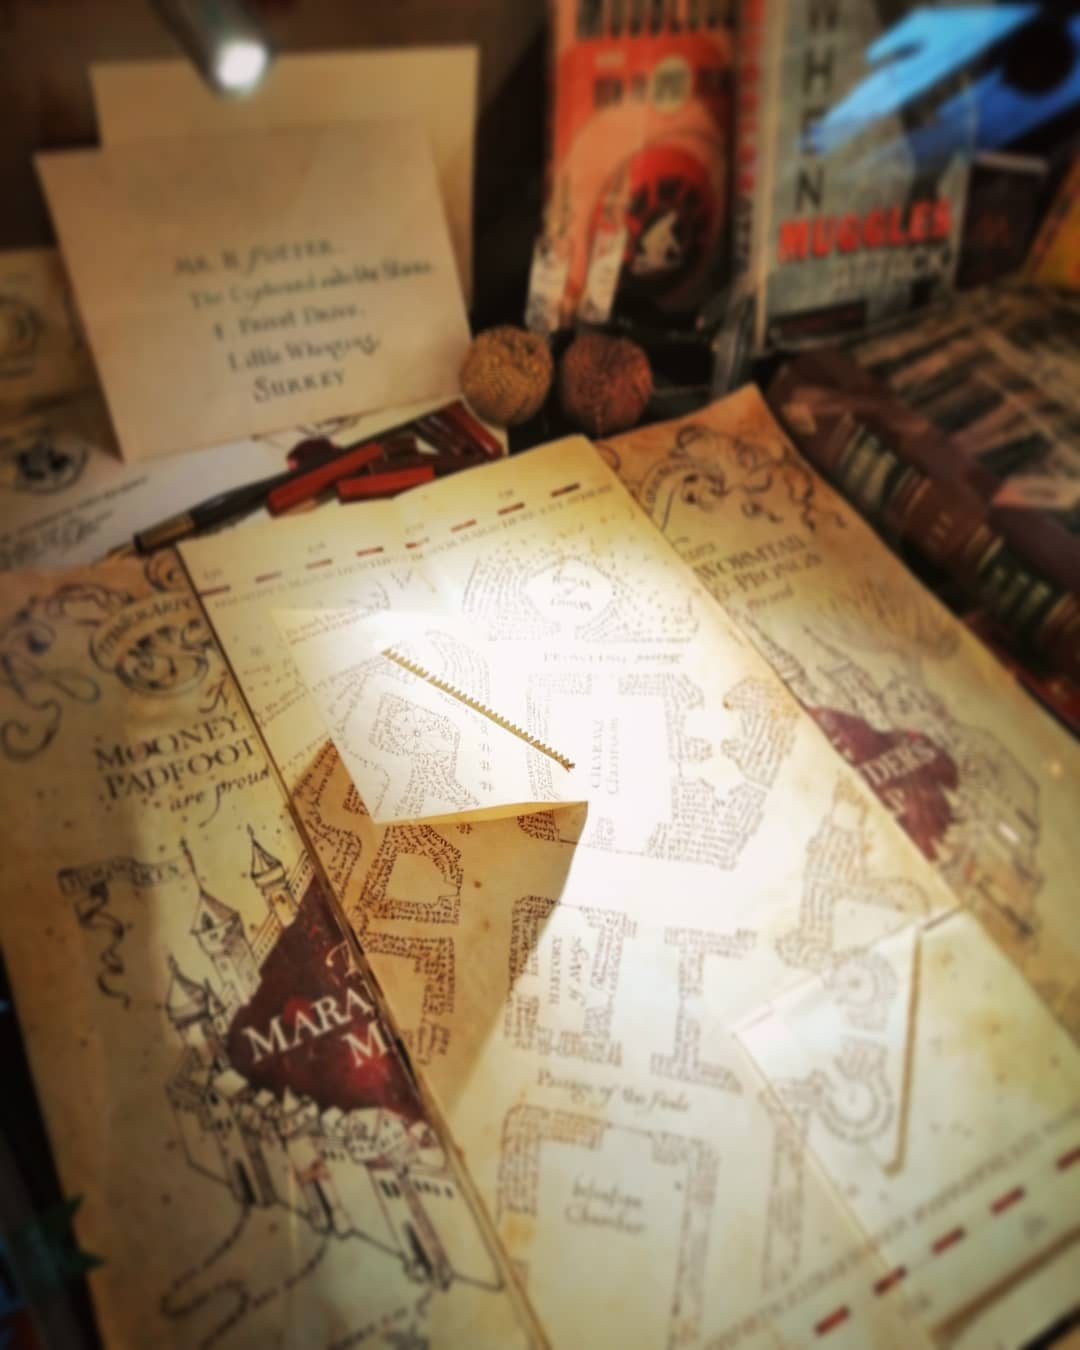 House of MinaLima displays the Marauder's Map, Harry's acceptance letter, and many more detailed designs.